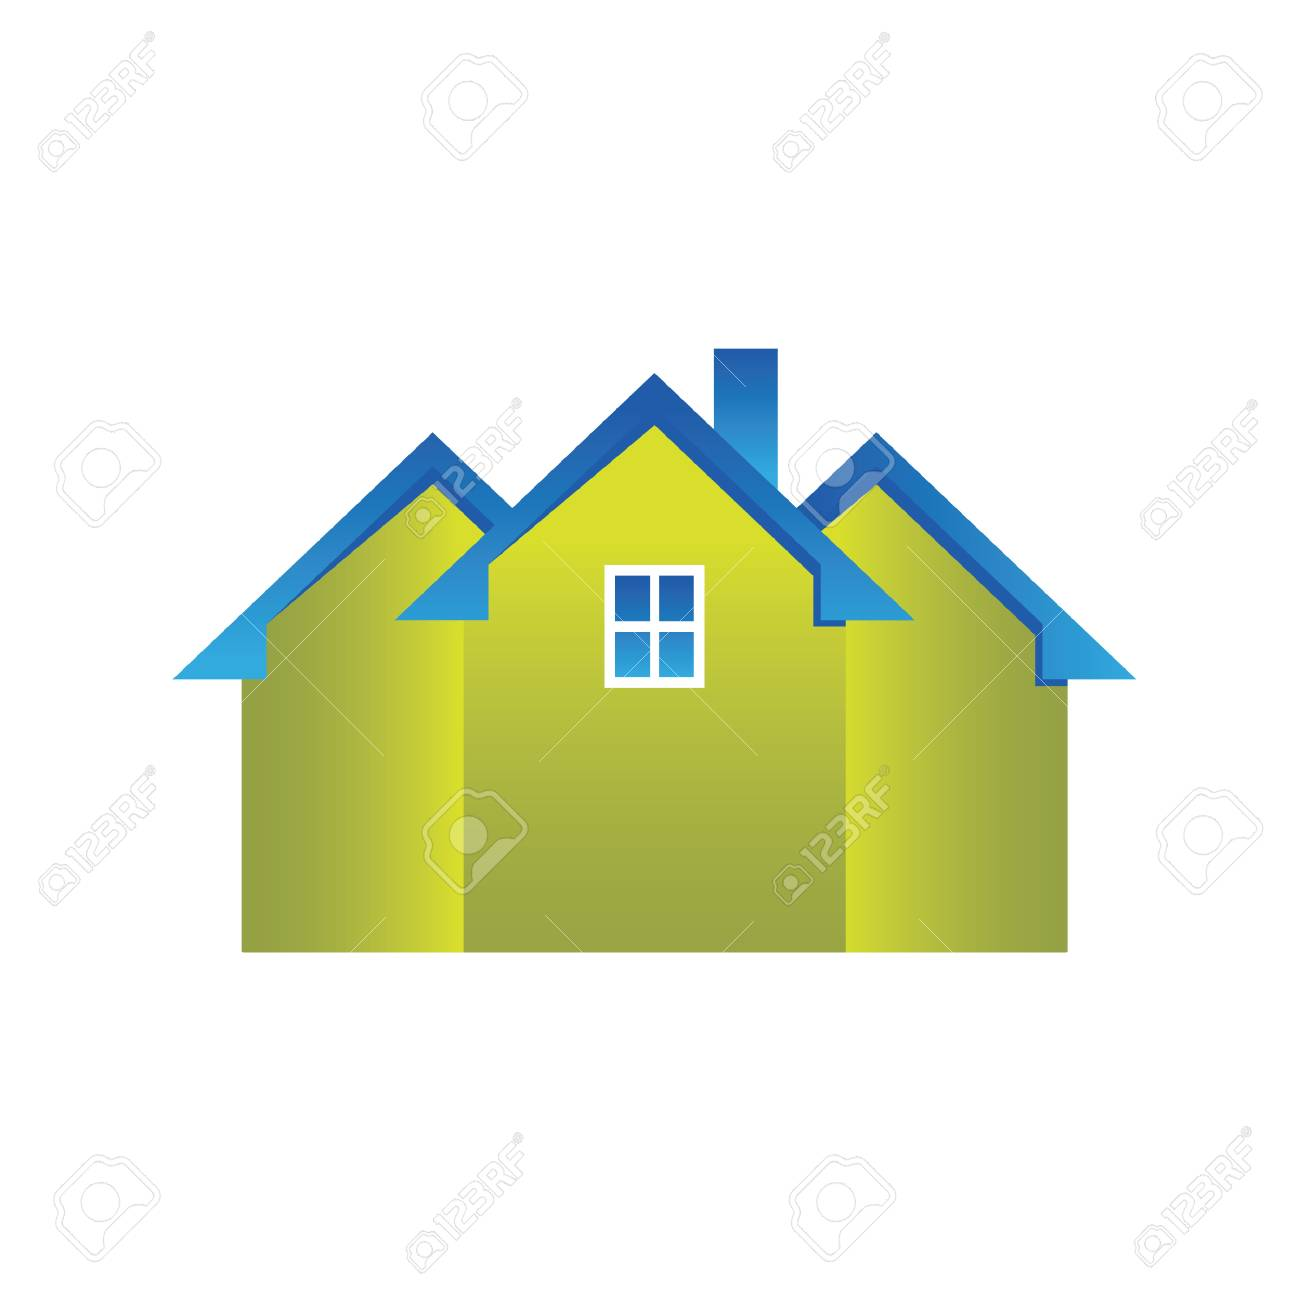 Houses Stock Vector - 8609742